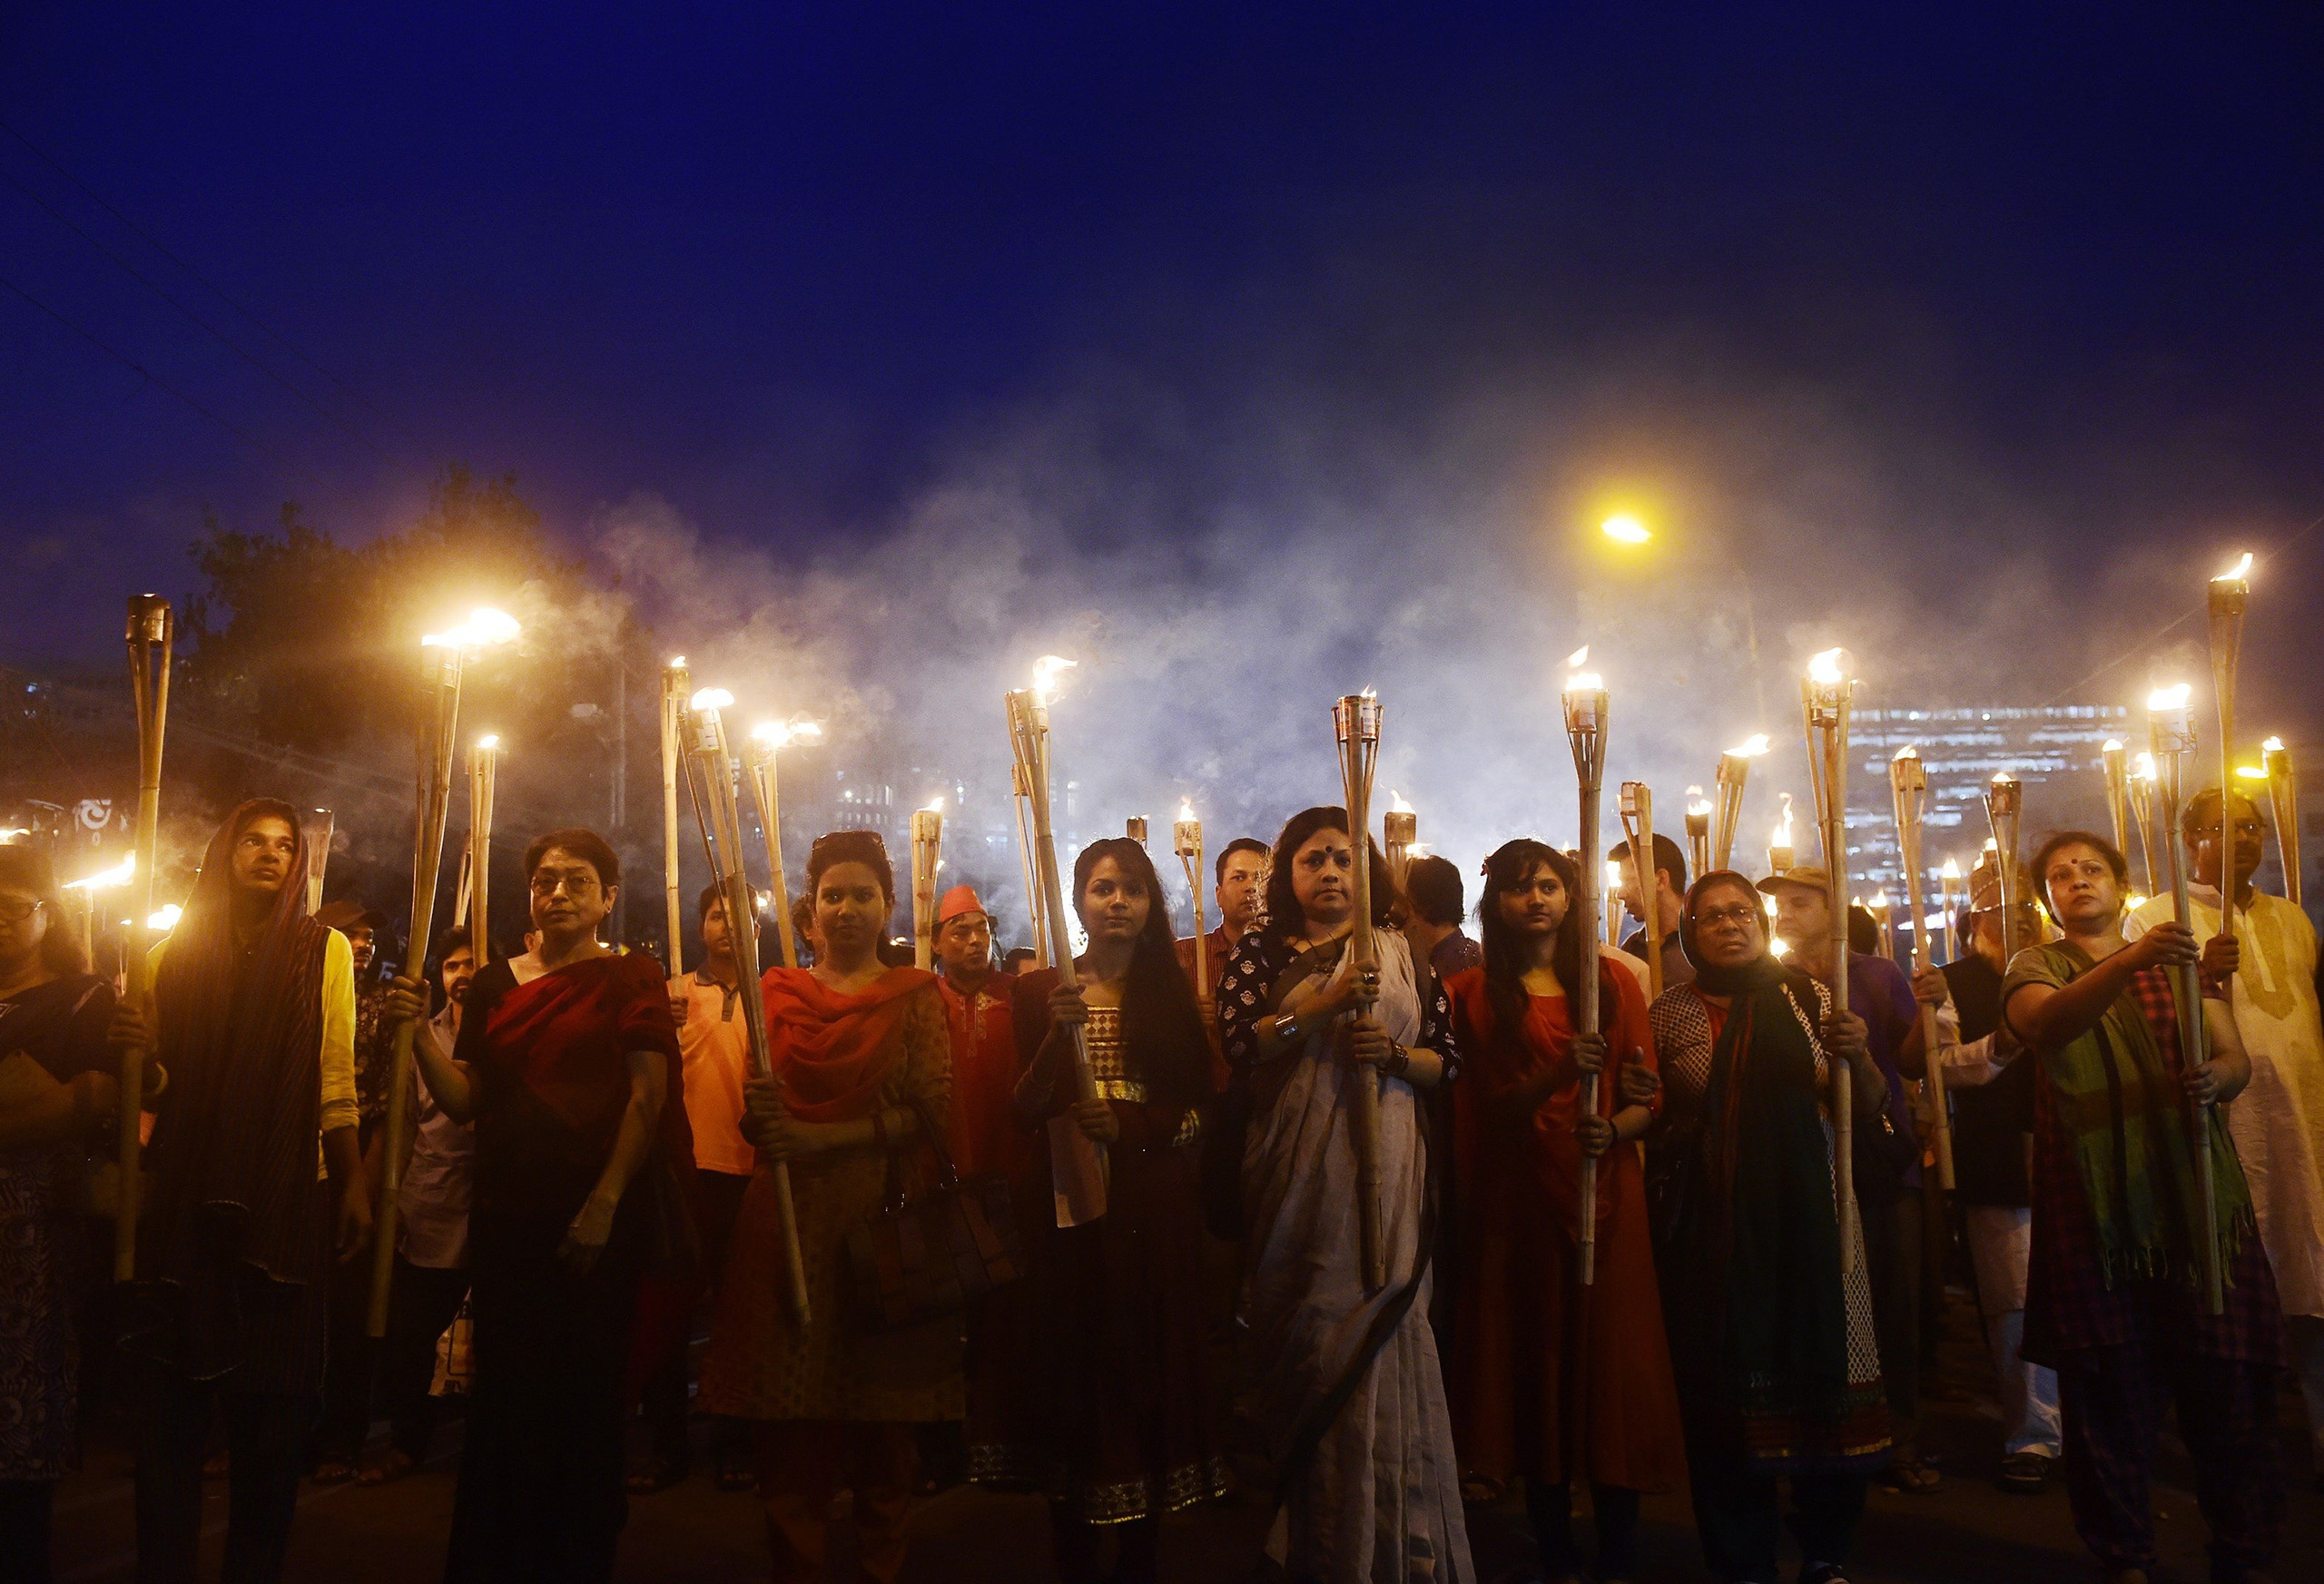 Bangladeshi activists take part in a protest in Dhaka on Feb. 27 over the murder of the secular blogger Avijit Roy.